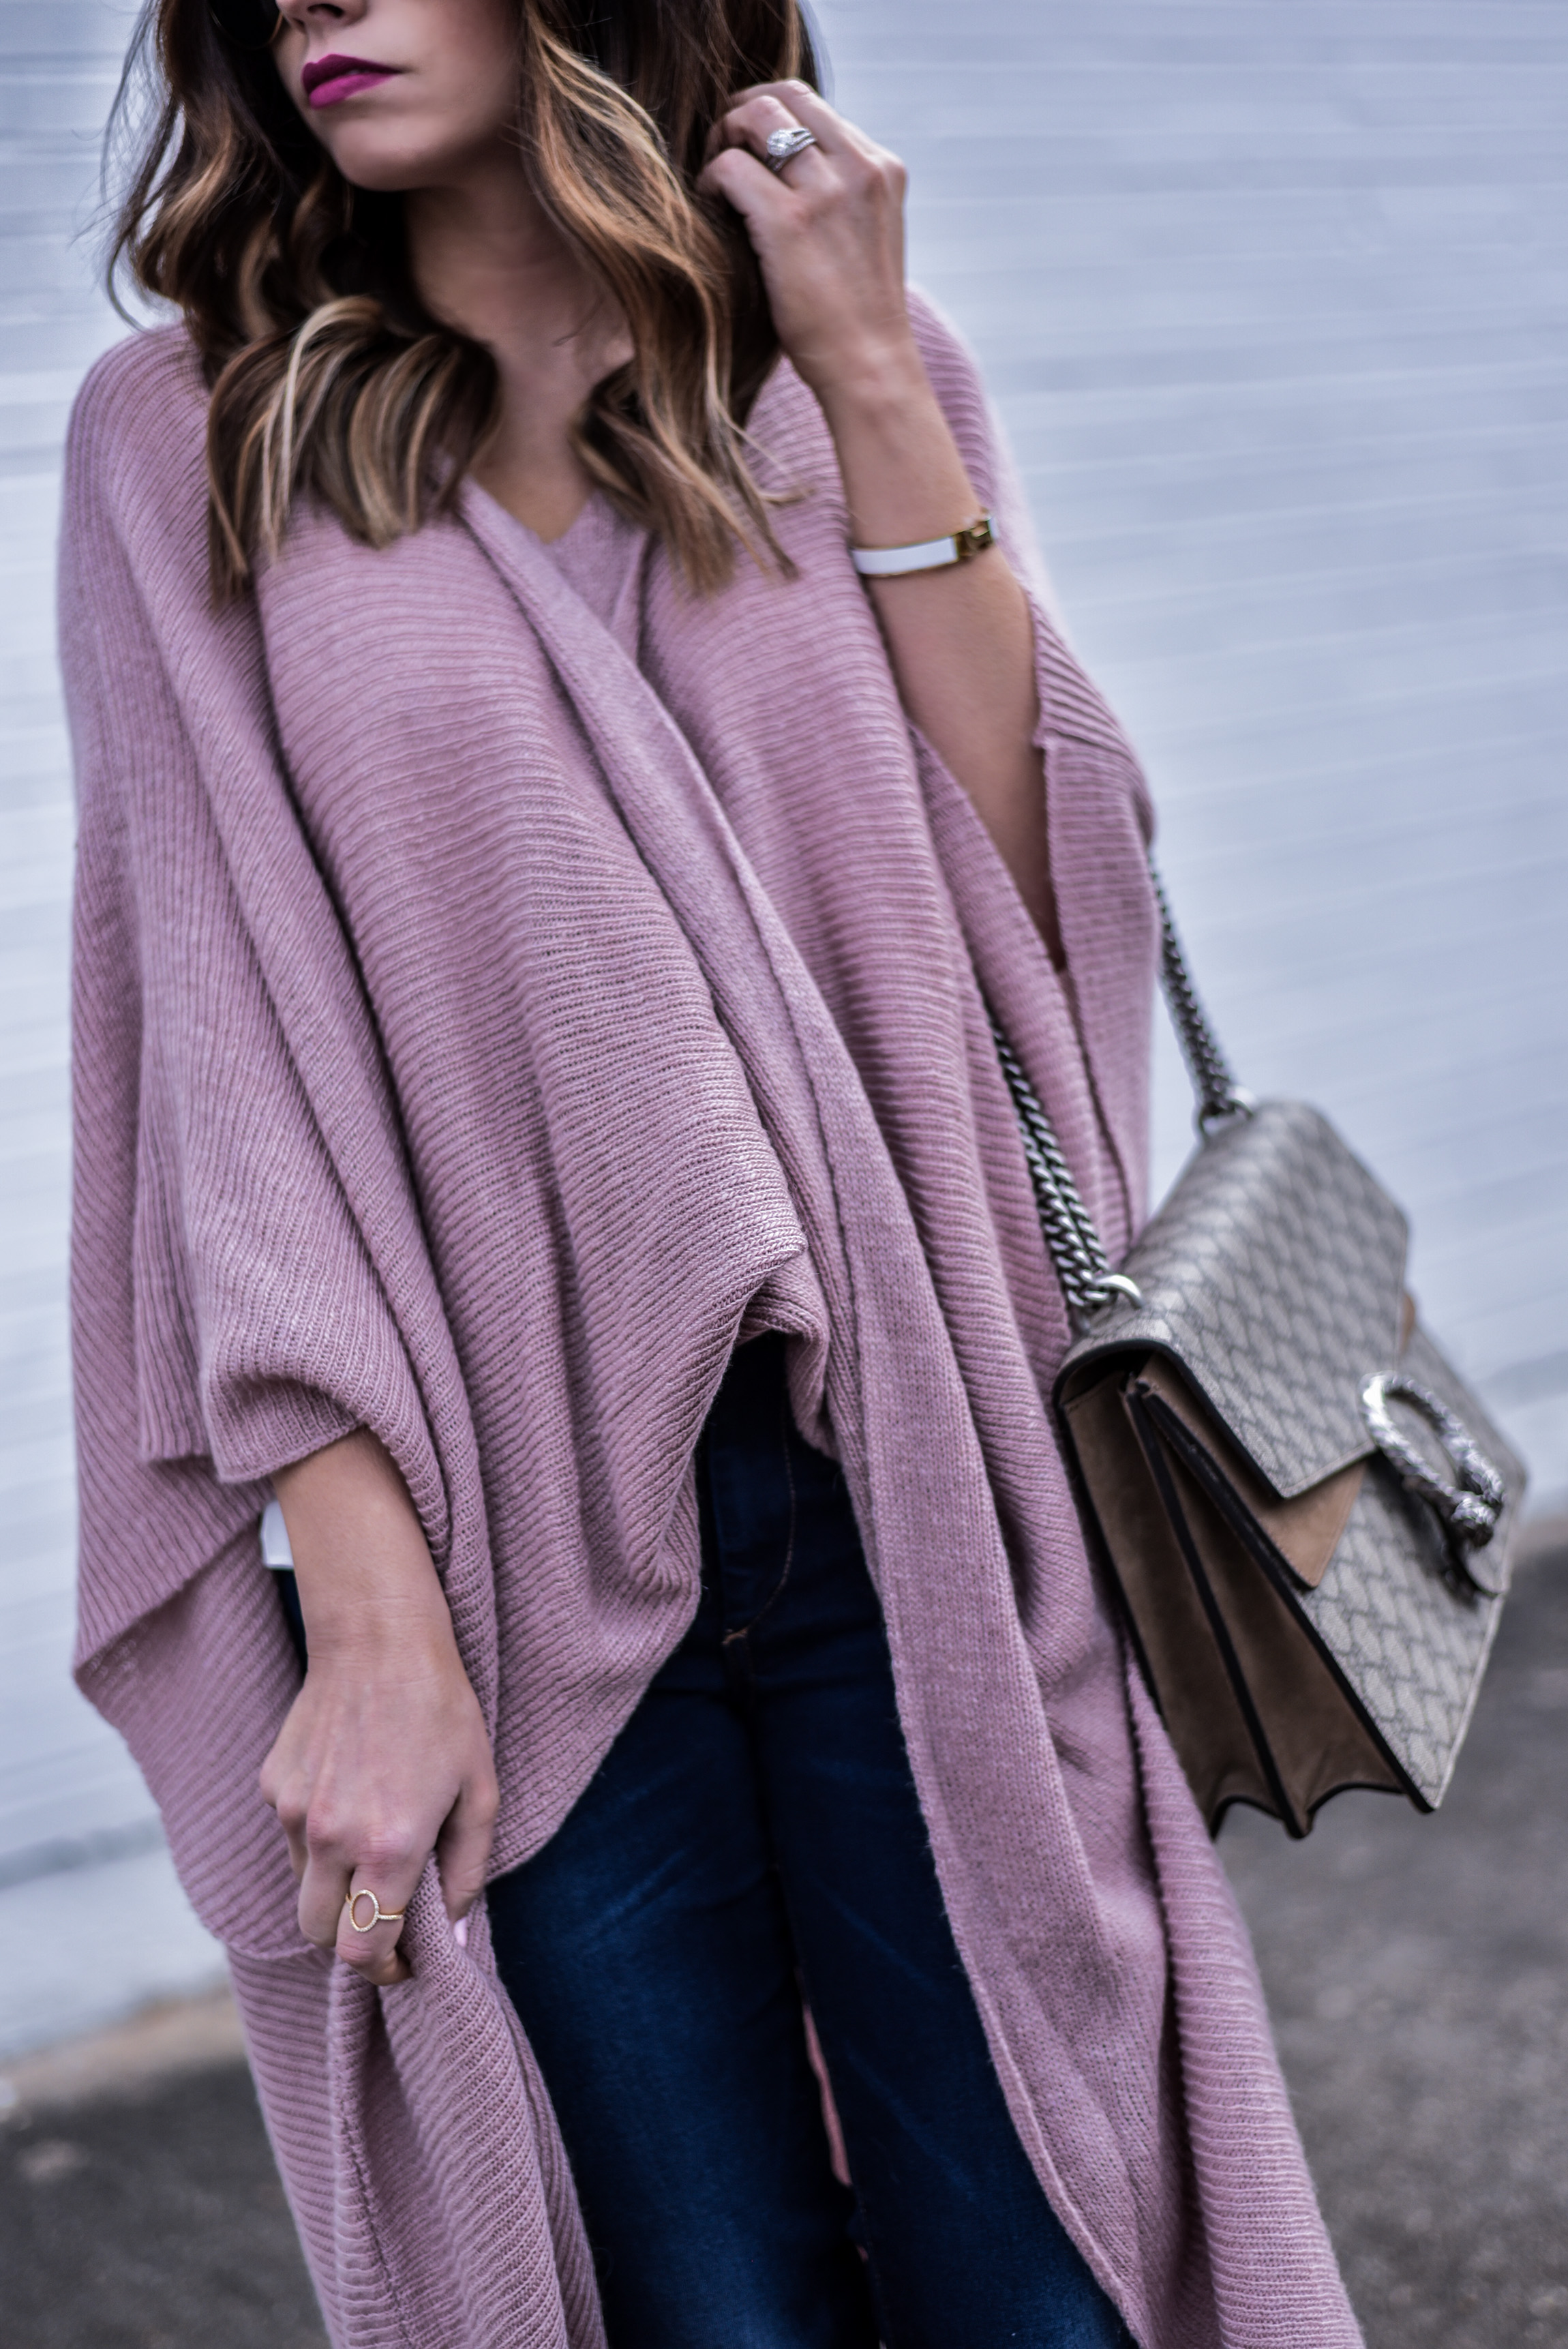 Tiffany Jais the Houston style blogger of Flaunt and Center wearing a wrap poncho from anthropology and dark wash skinny jeans with steve madden heels, and a gucci bag | what's trending in fashion